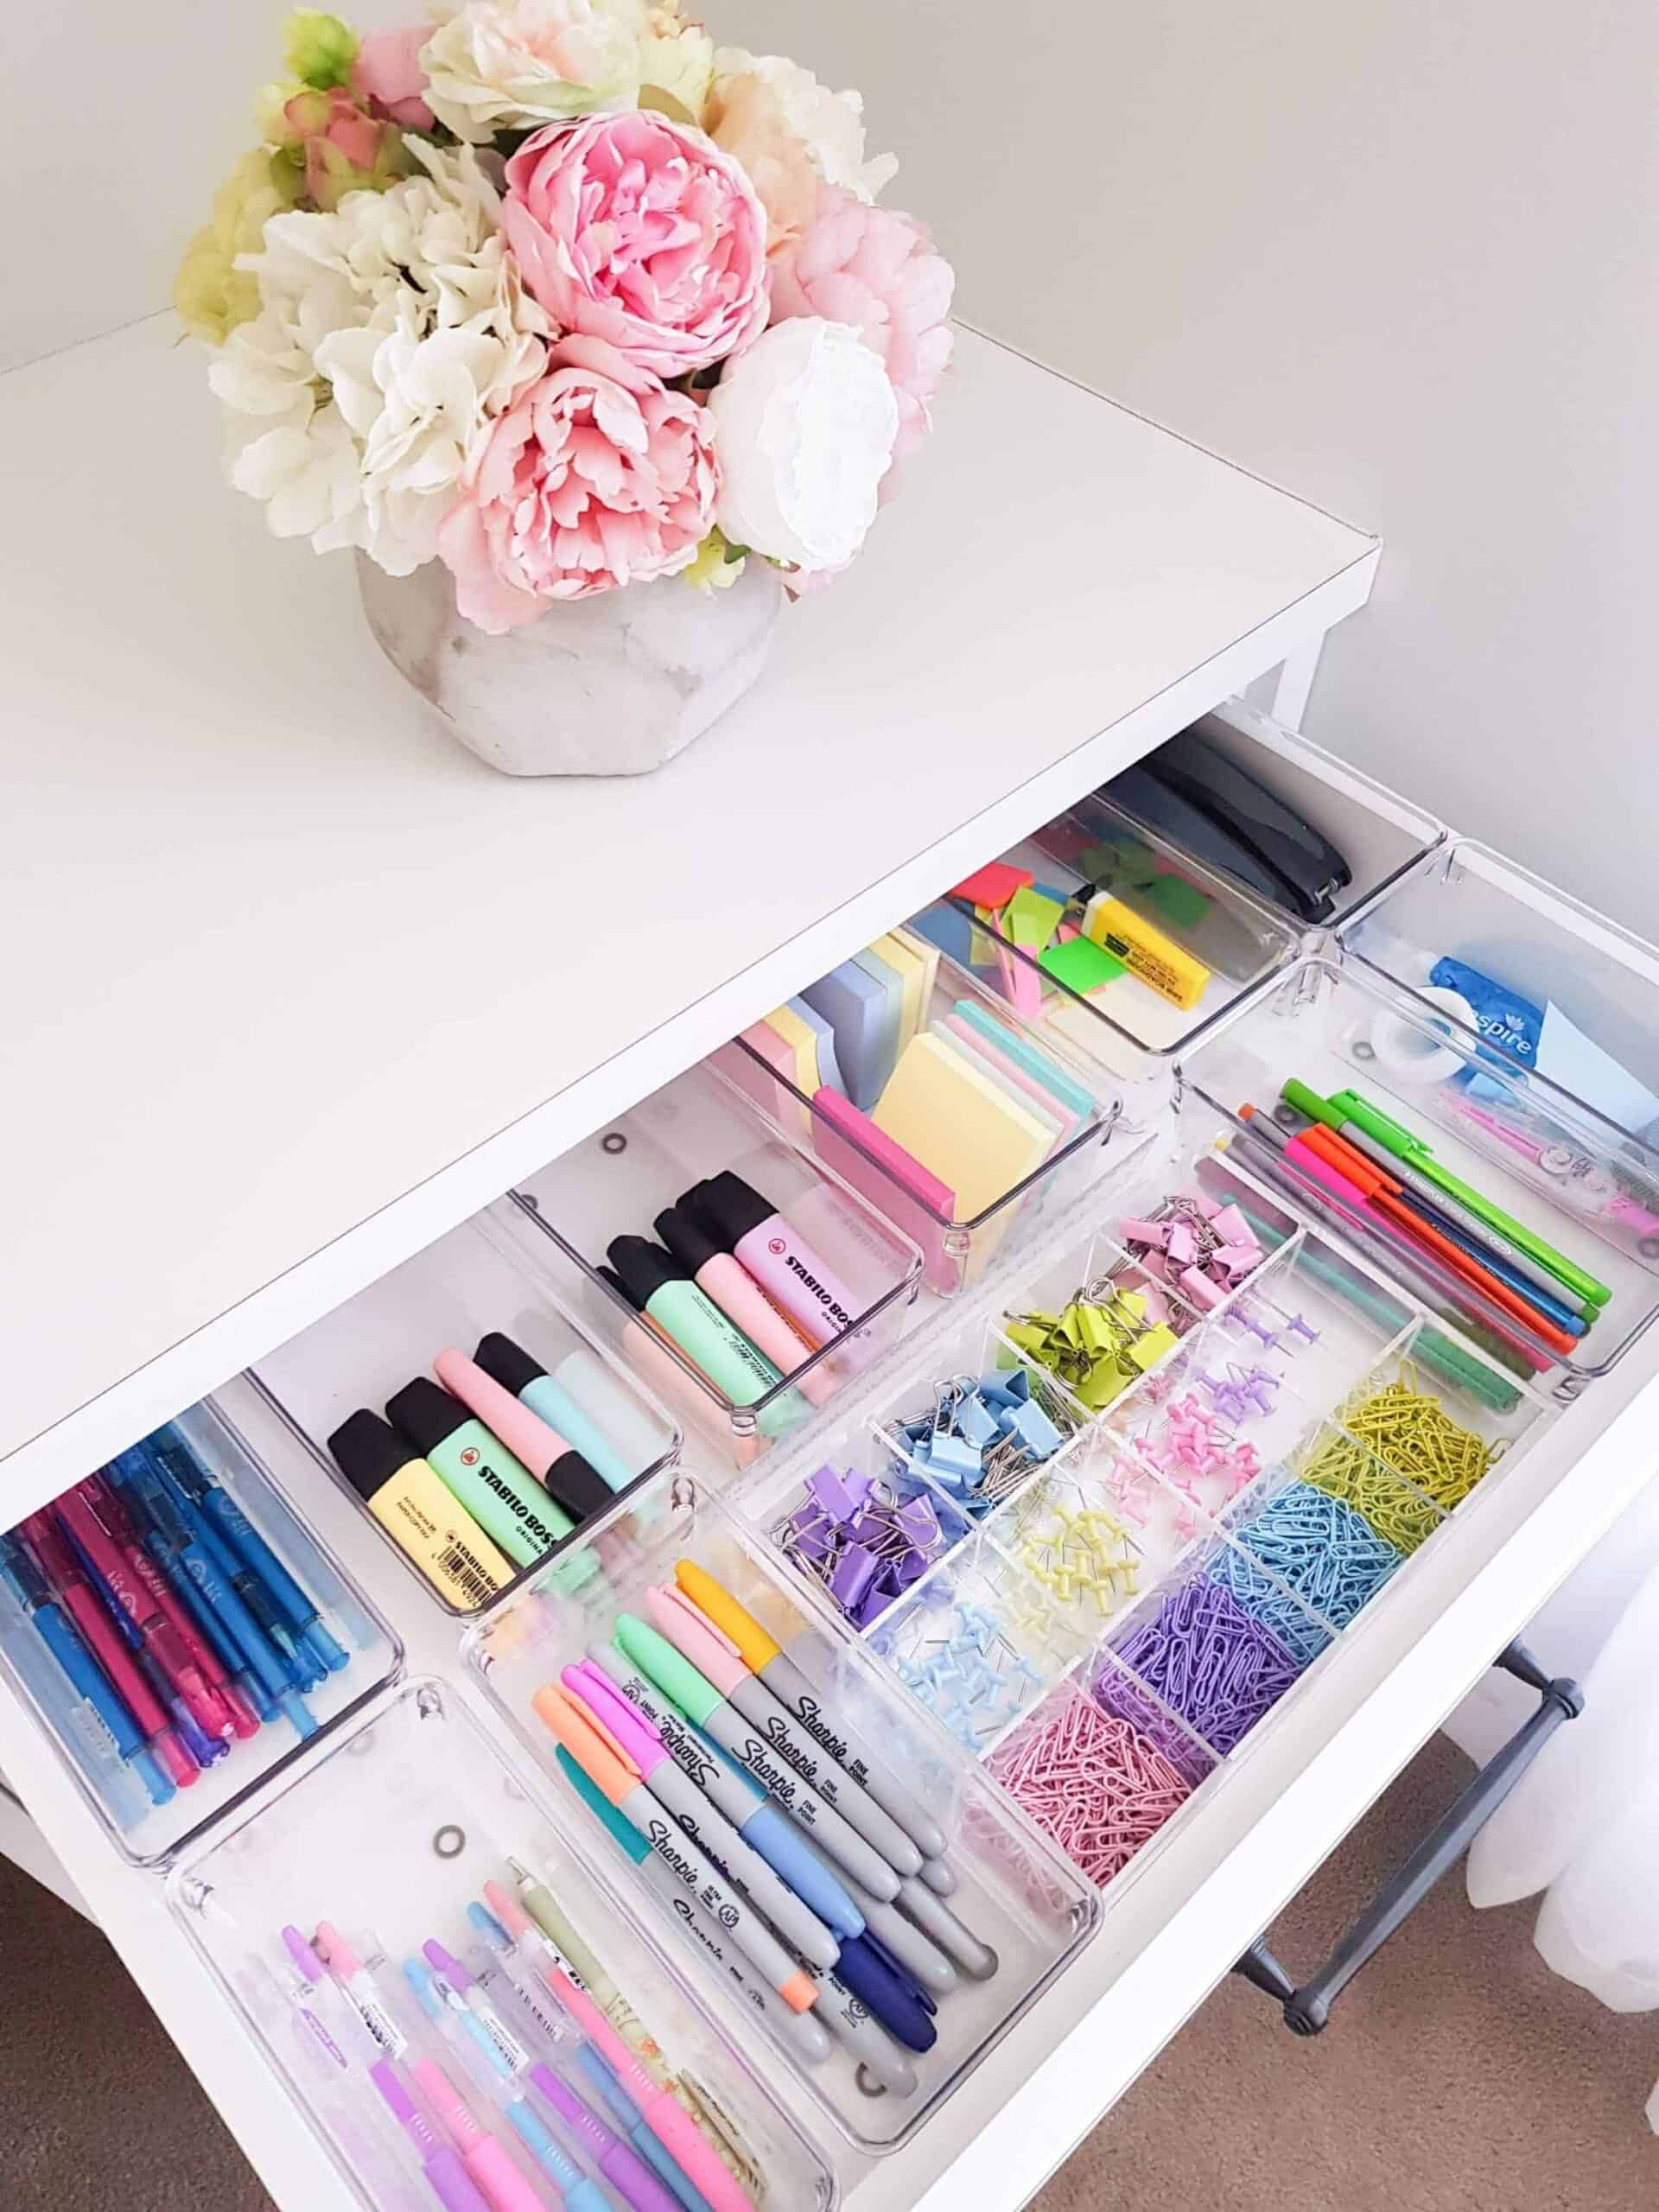 Organized stationery